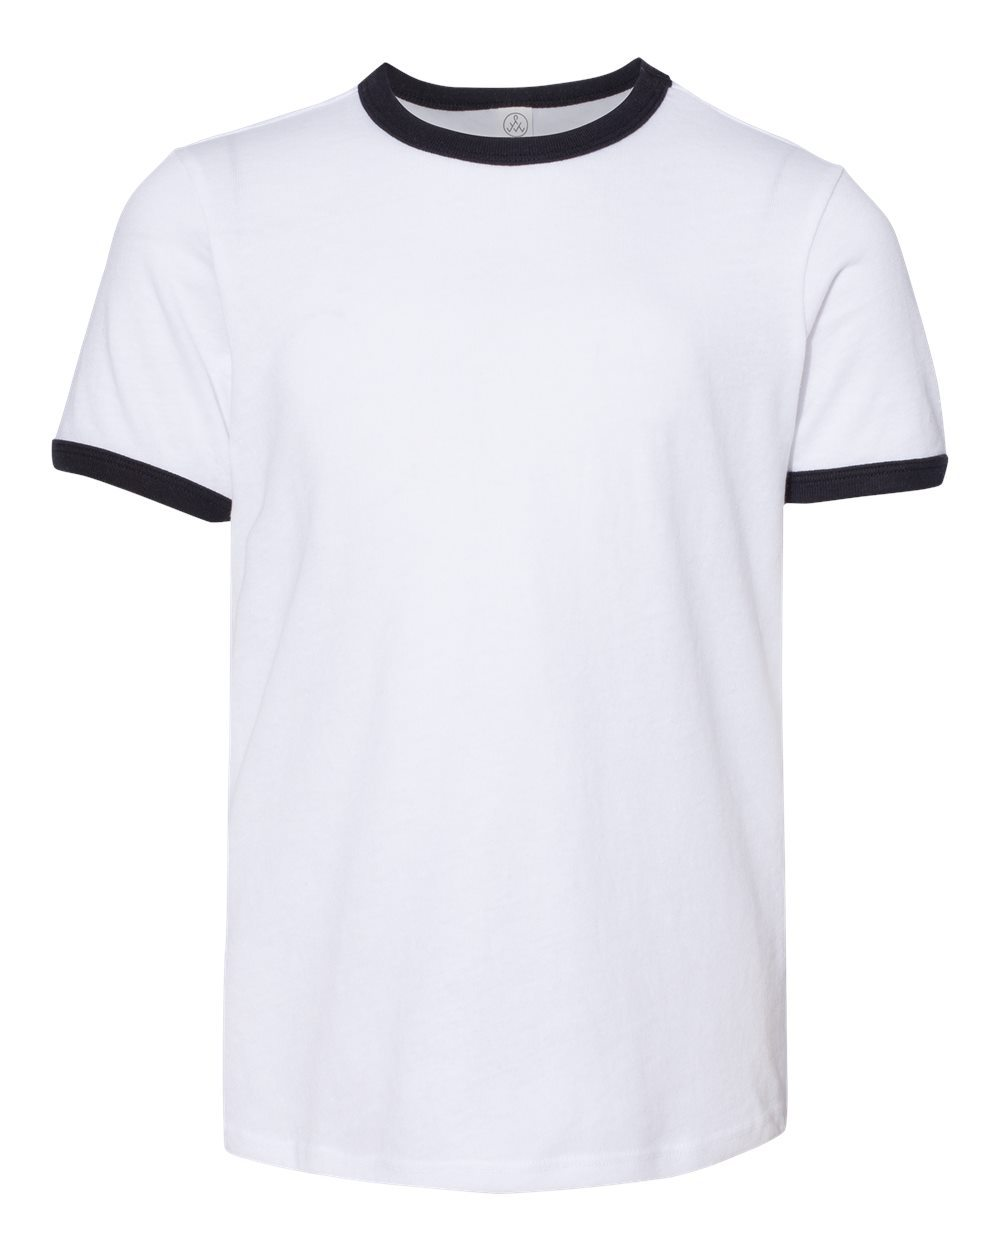 910239f88 Alternative Youth Ringer Tee K5103 [from $10.12] | Hosiery and More